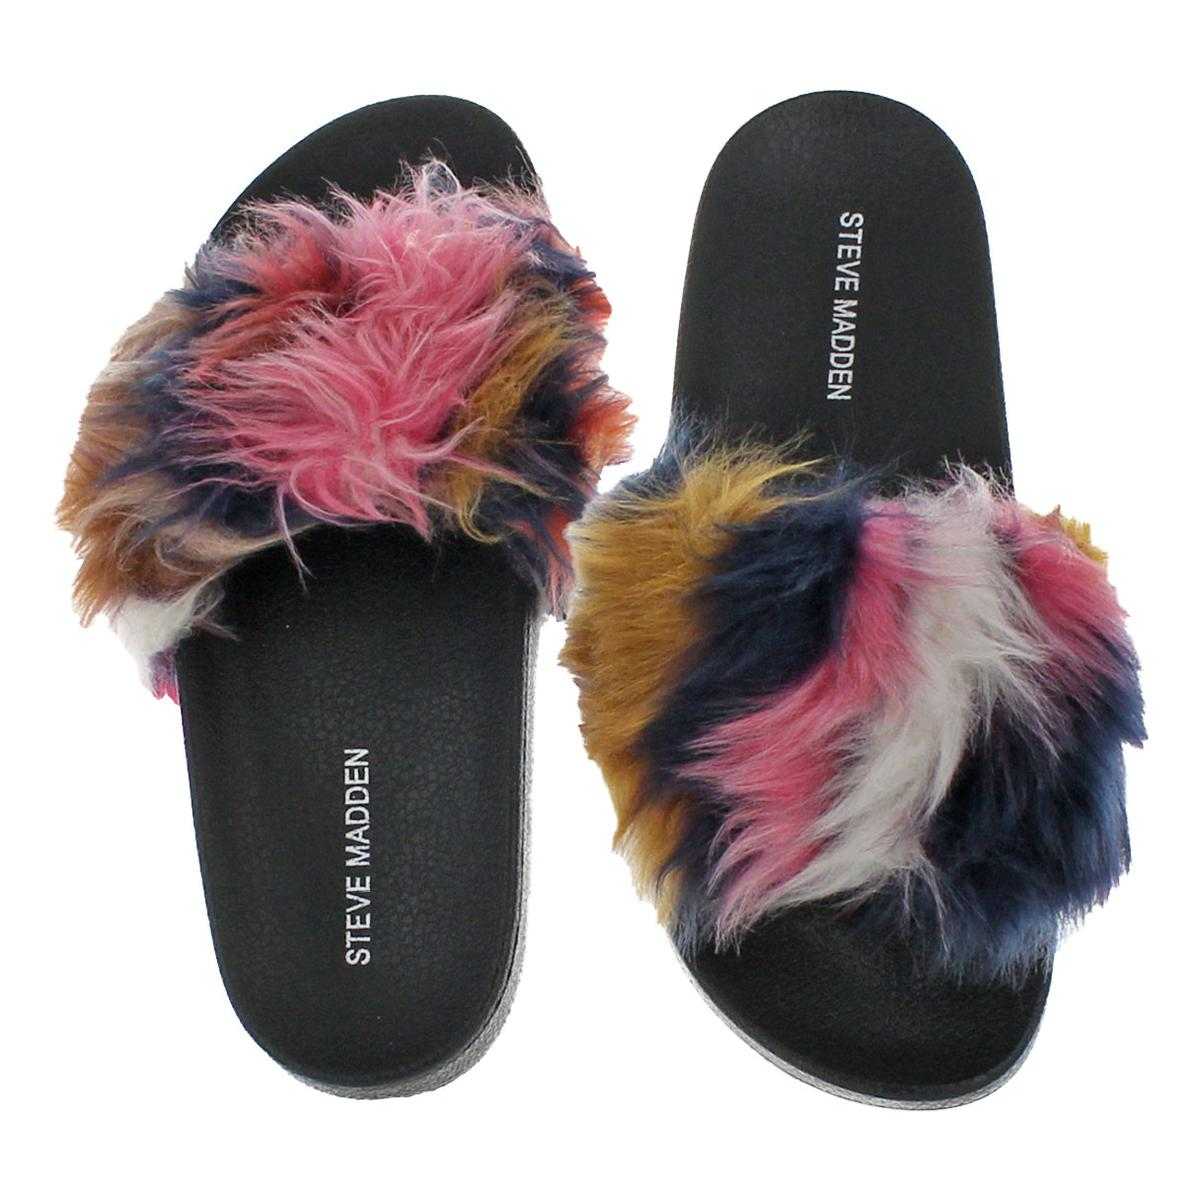 Steve-Madden-Softey-Women-039-s-Faux-Fur-Casual-Spa-Pool-Slide-Sandals-Shoes thumbnail 9